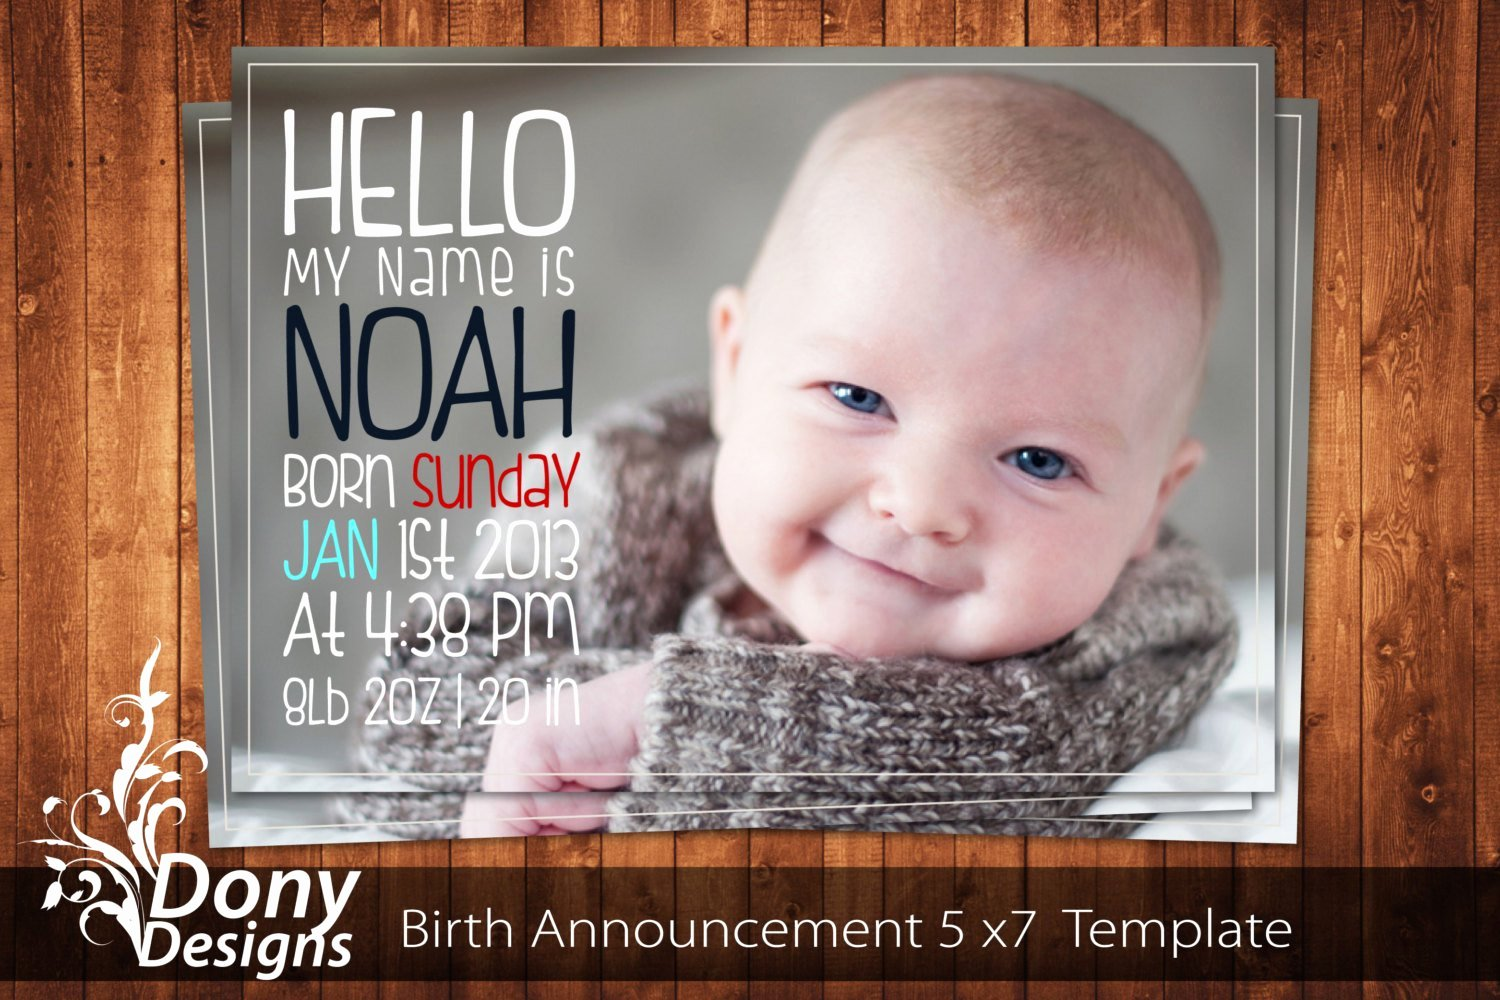 Buy 1 Get 1 Free Birth Announcement Neutral Baby